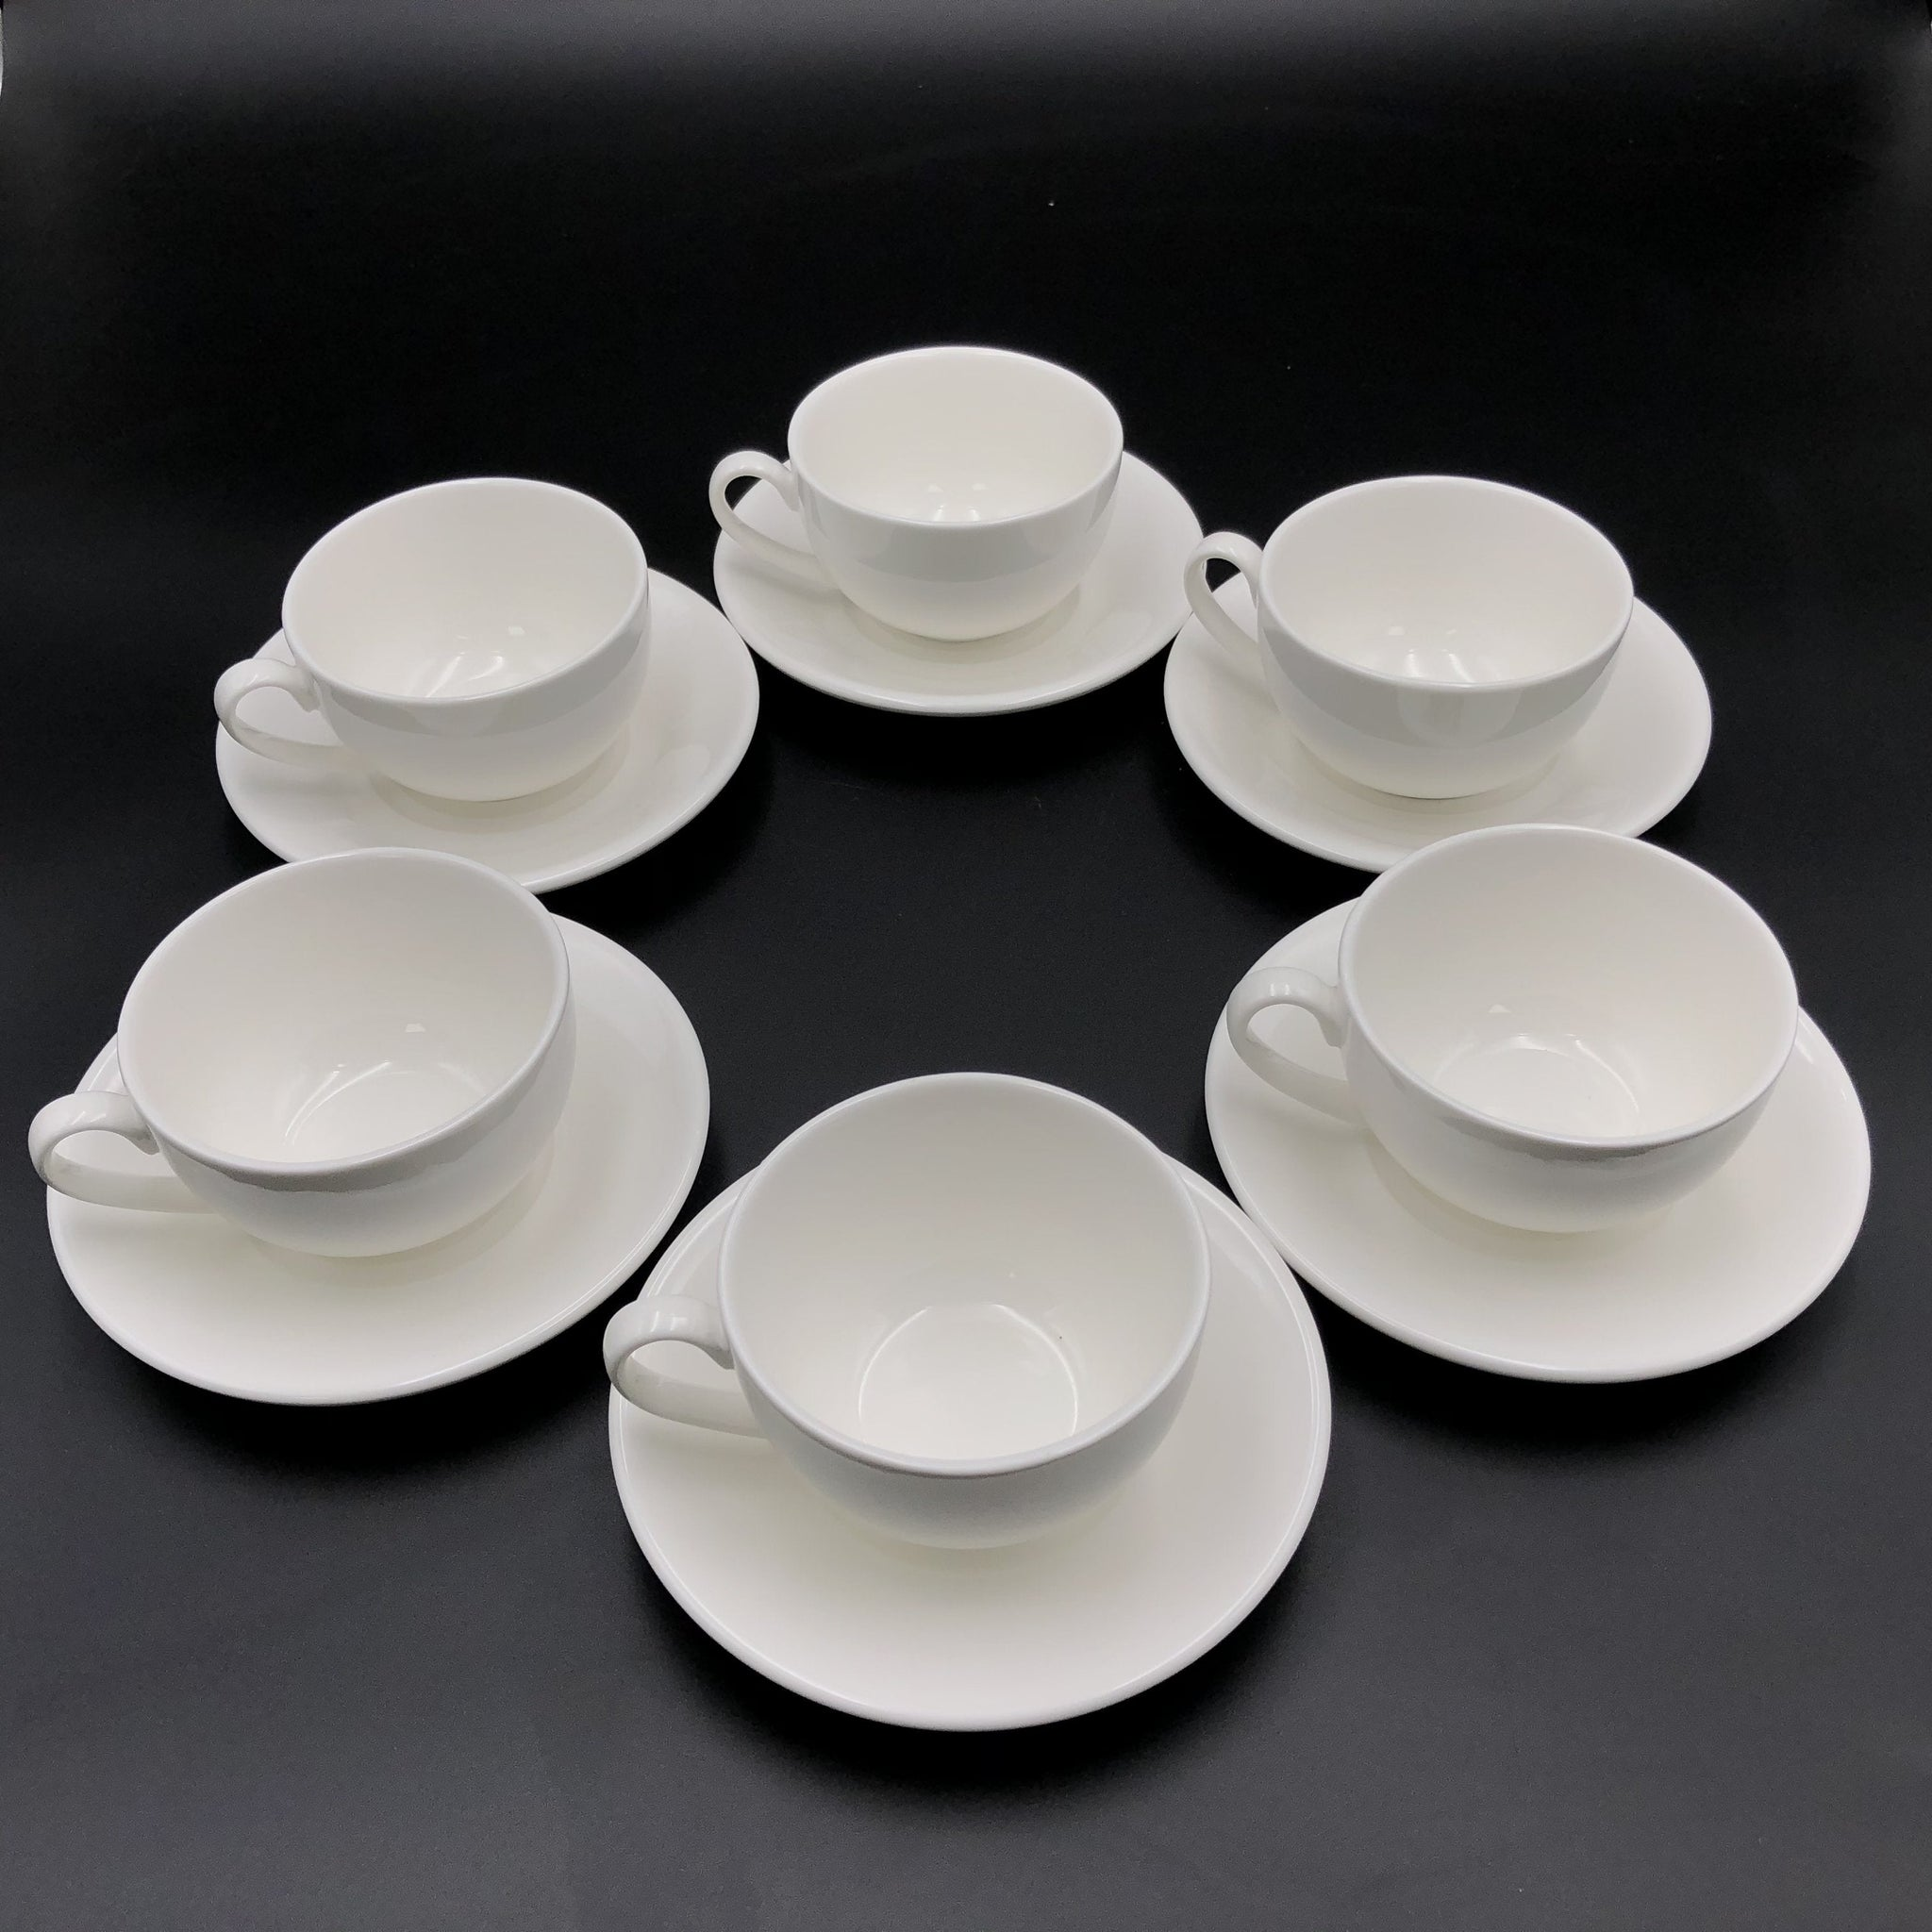 Fine Porcelain 15 Piece Tea Serving Set For 6  WL-555036